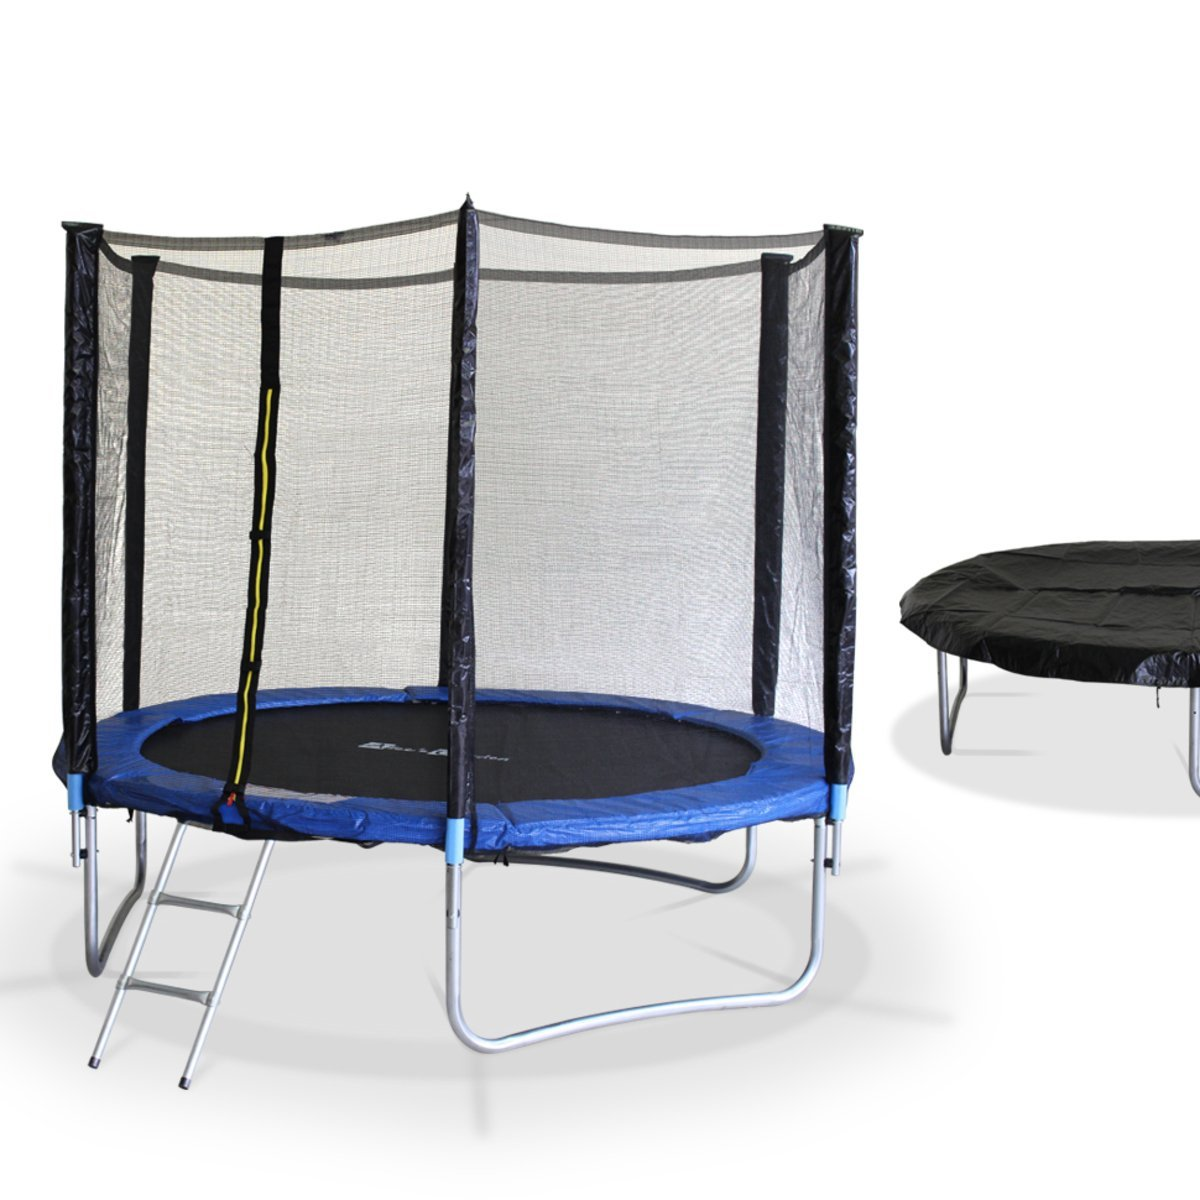 trampoline alice s garden pluton xxl 245 cm de diam tre meilleur trampoline. Black Bedroom Furniture Sets. Home Design Ideas